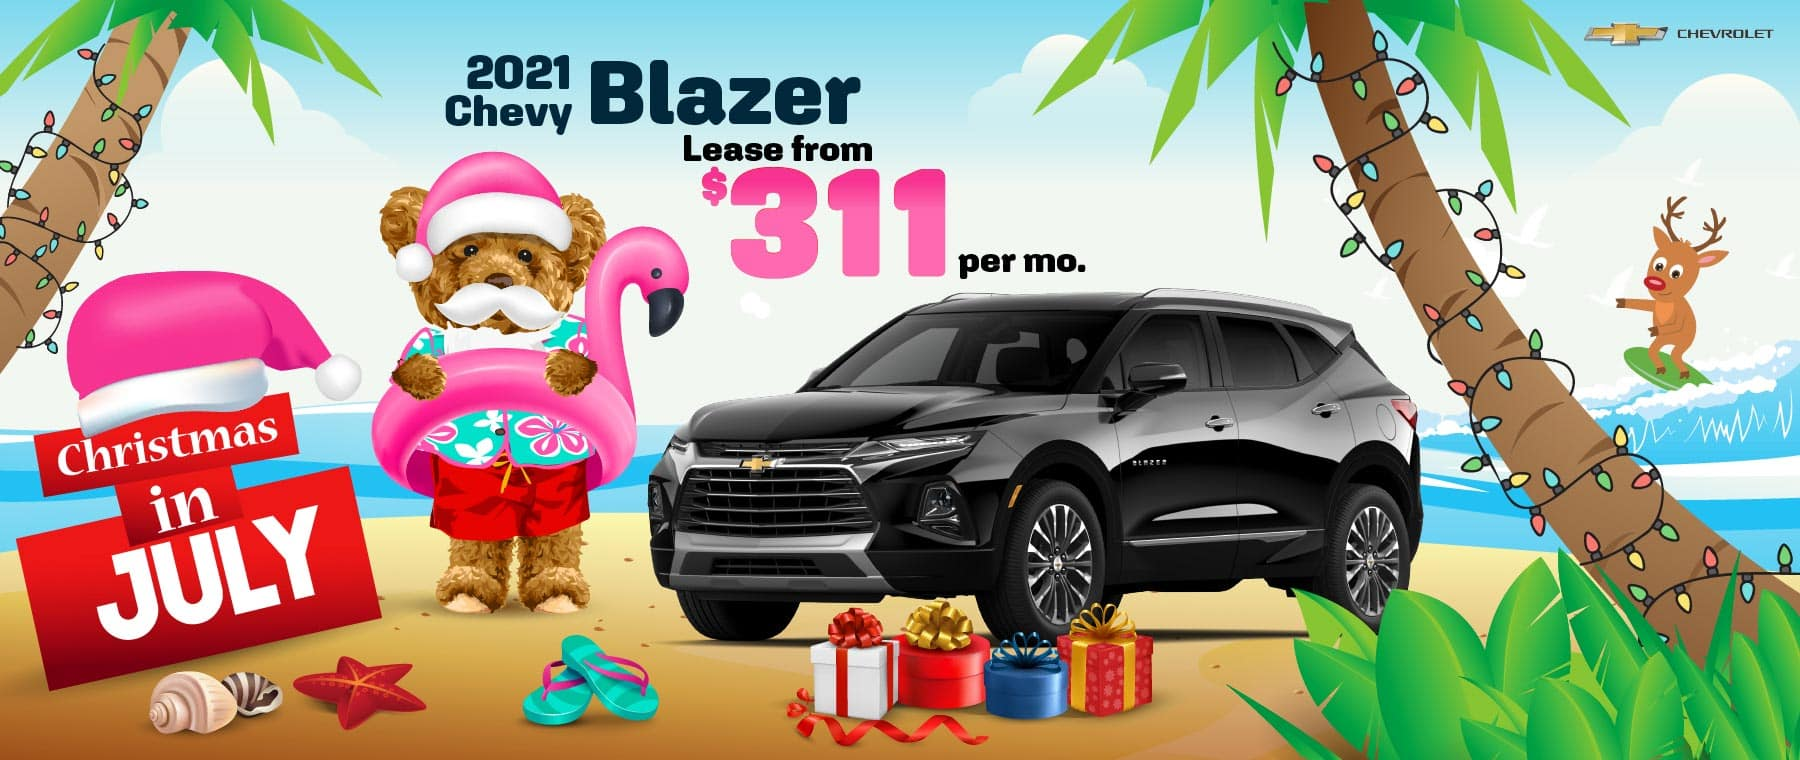 2021 Chevy Blazer - lease from $311 per month